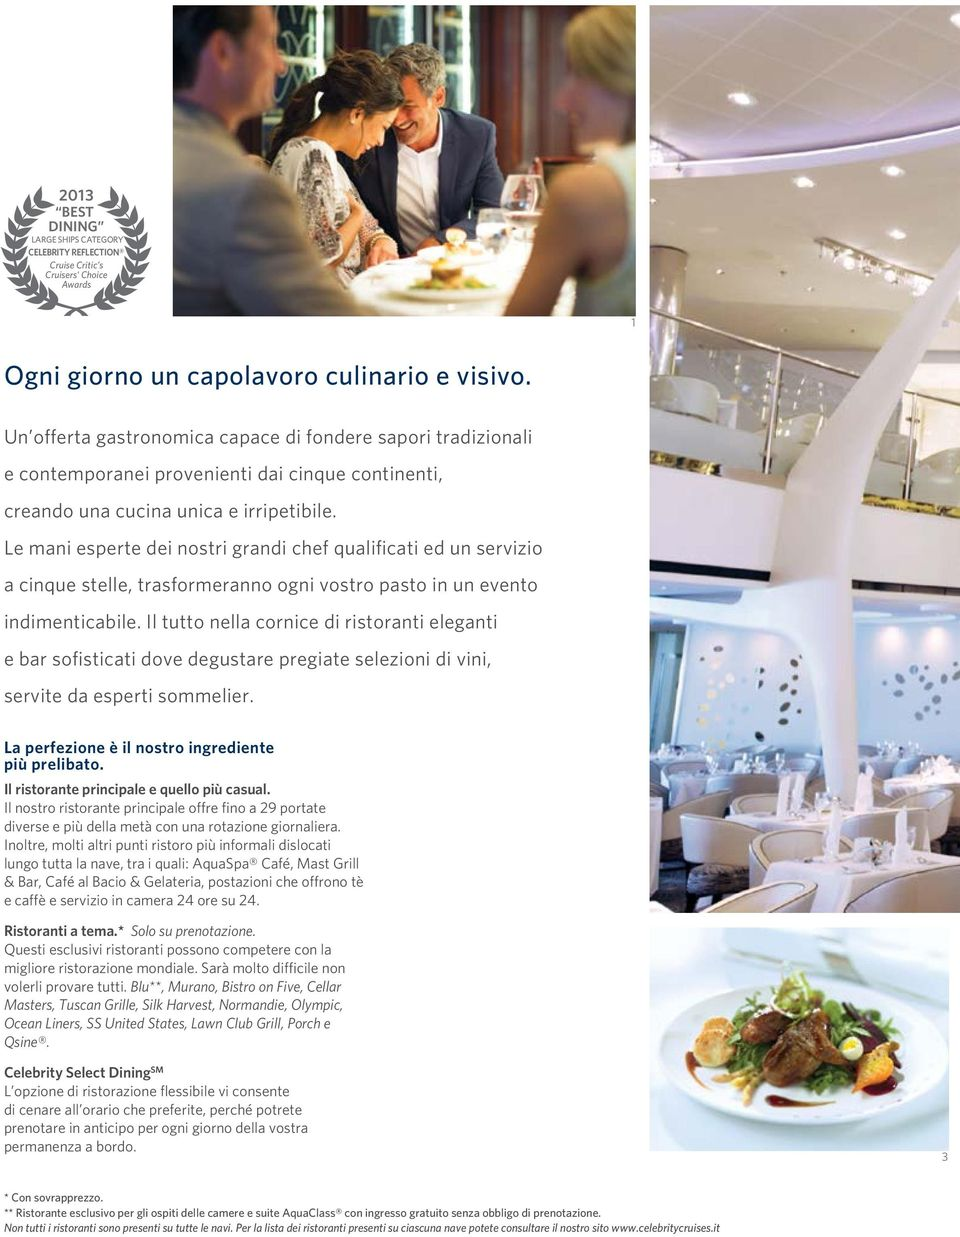 CABINS LARGE SHIPS CATEGORY CELEBRITY ECLIPSE Cruise Critic s UK Cruisers Choice 1 Ogni giorno un capolavoro culinario e visivo.